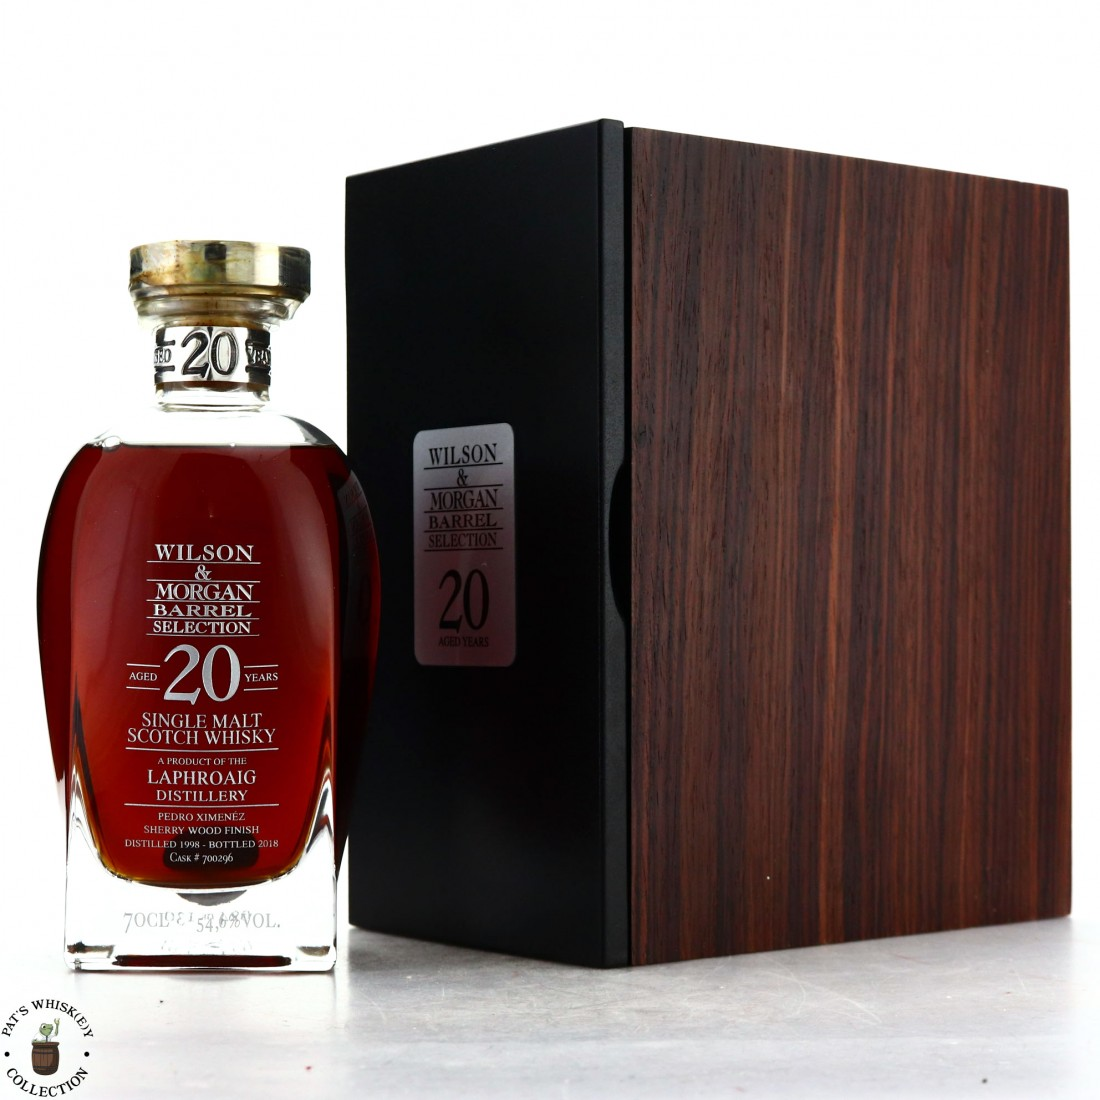 Laphroaig 1998 Wilson and Morgan 20 Year Old Decanter